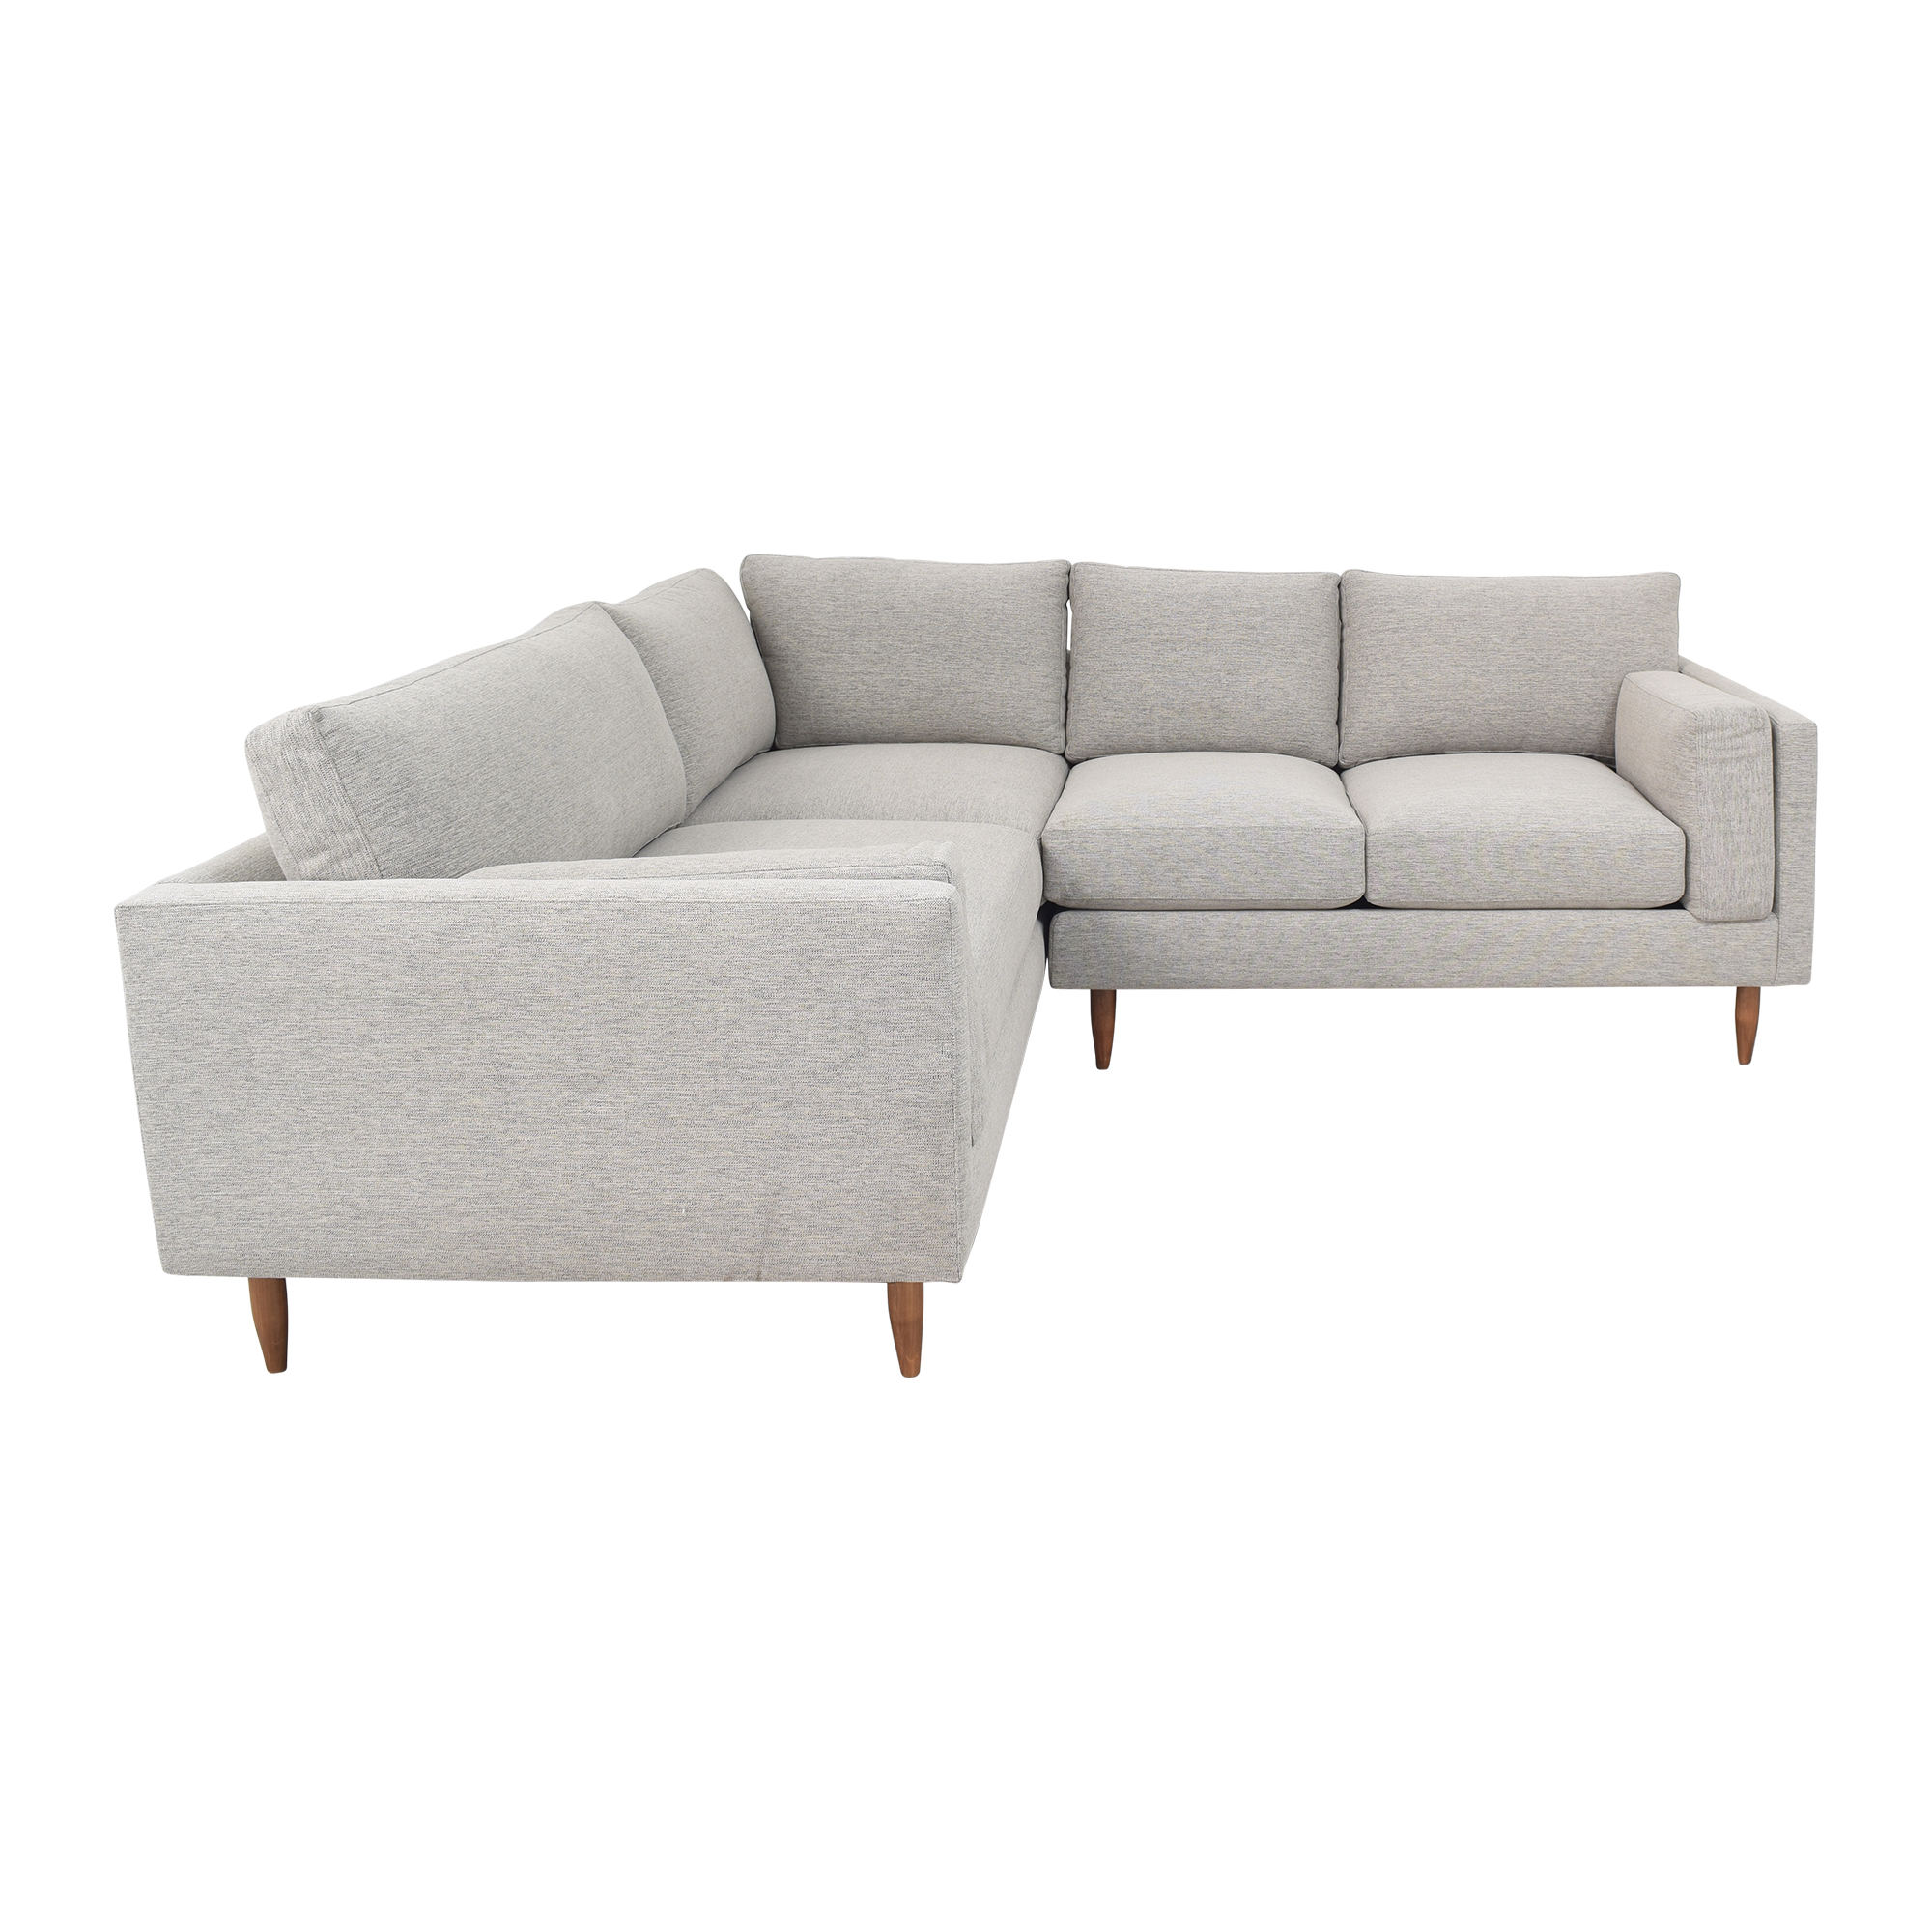 BenchMade Modern BenchMade Modern Skinny Fat Sectional Sofa nj